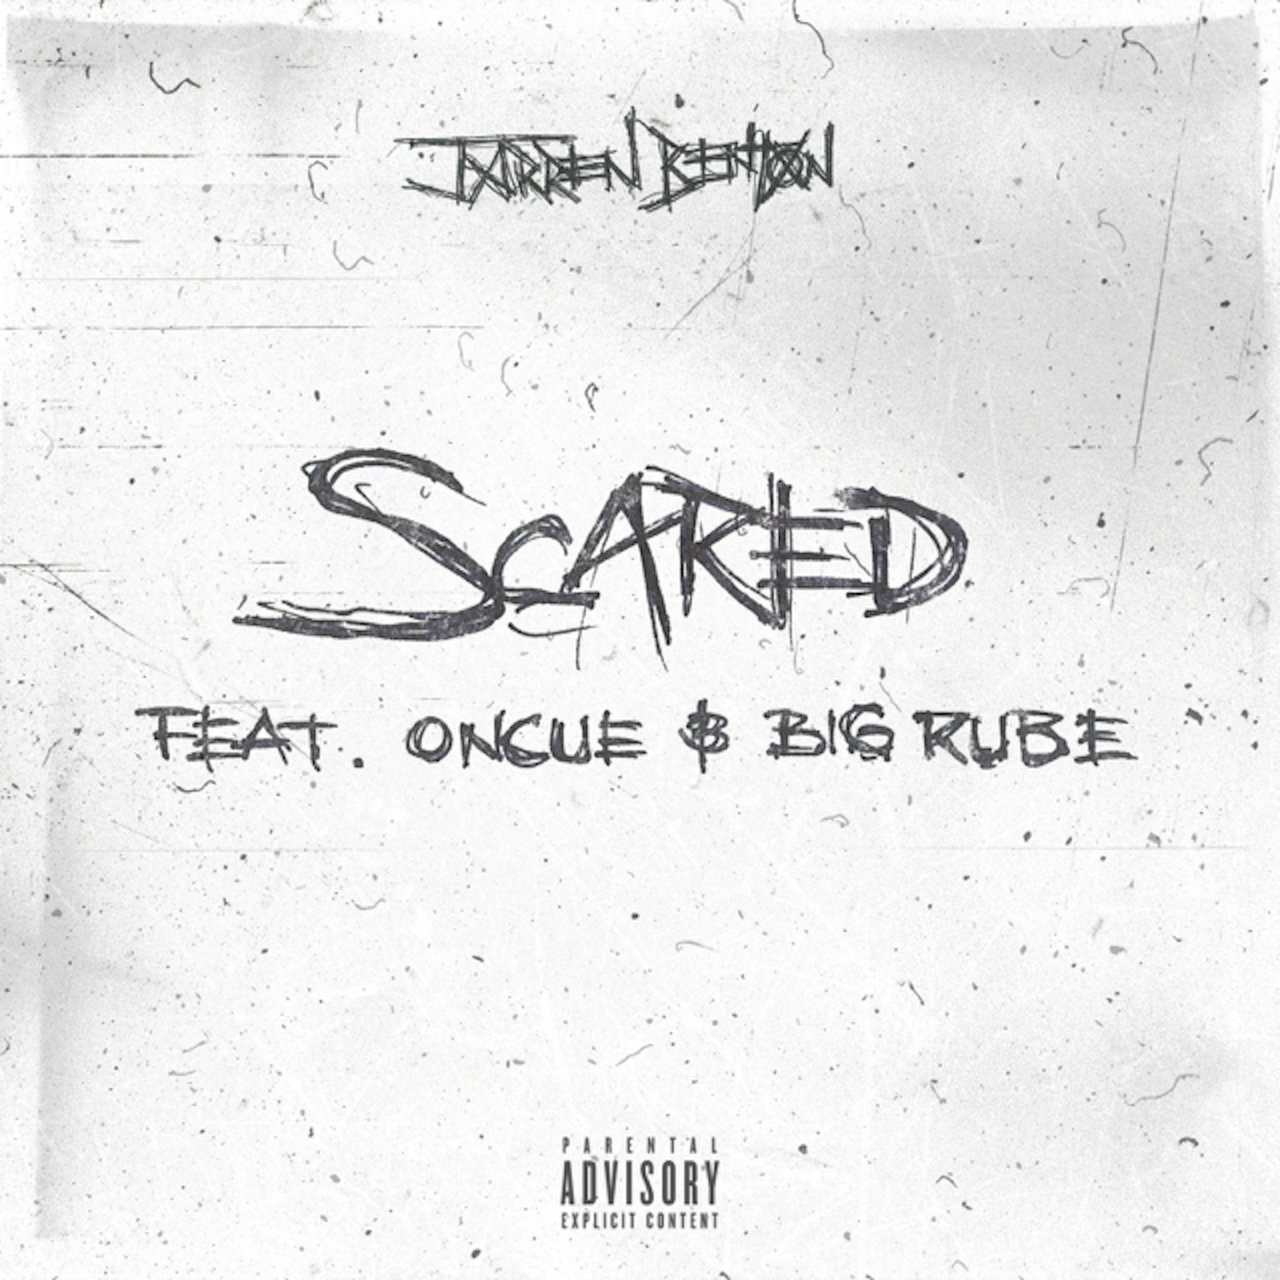 Scared (feat. OnCue & Big Rube)